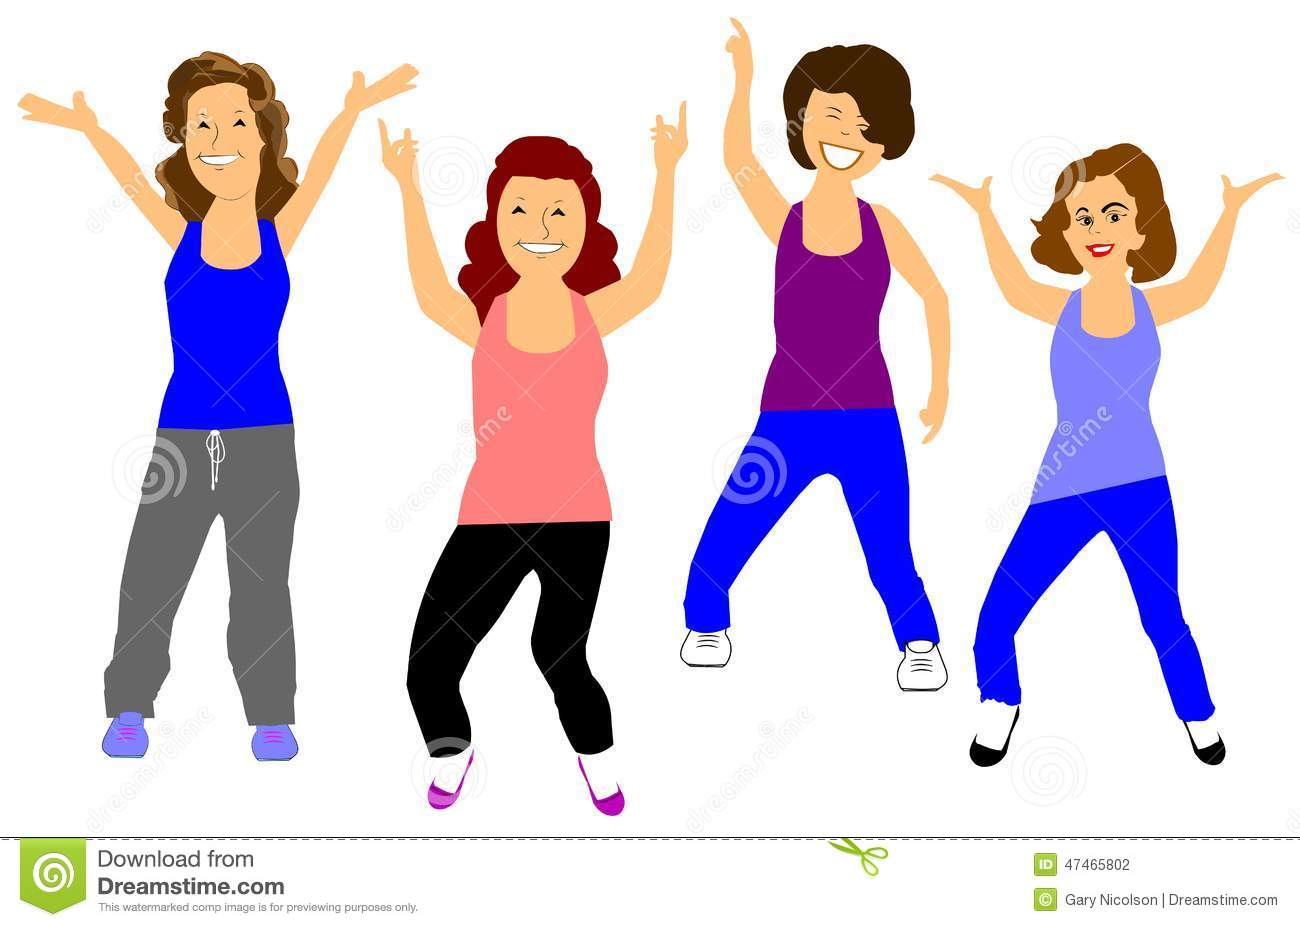 Free Clipart Of Exercise Class & Free Clip Art Images #25191.